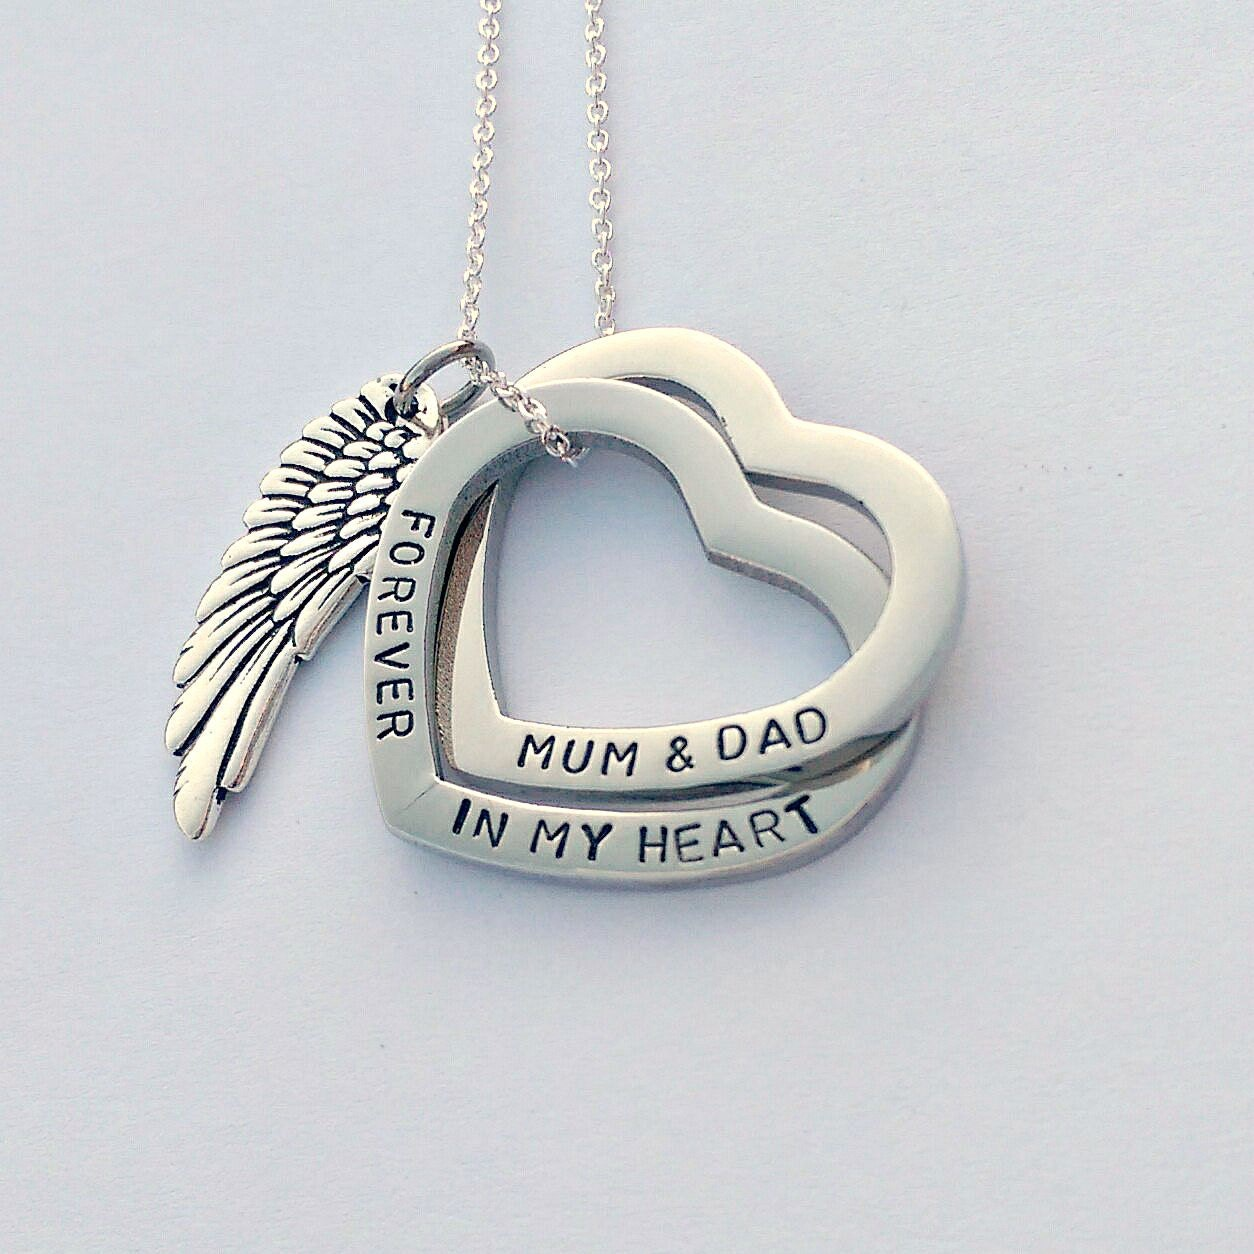 Personalised memorial gift - personalised memorial jewellery - forever in my heart necklace - angel wing necklace - remembrance necklace